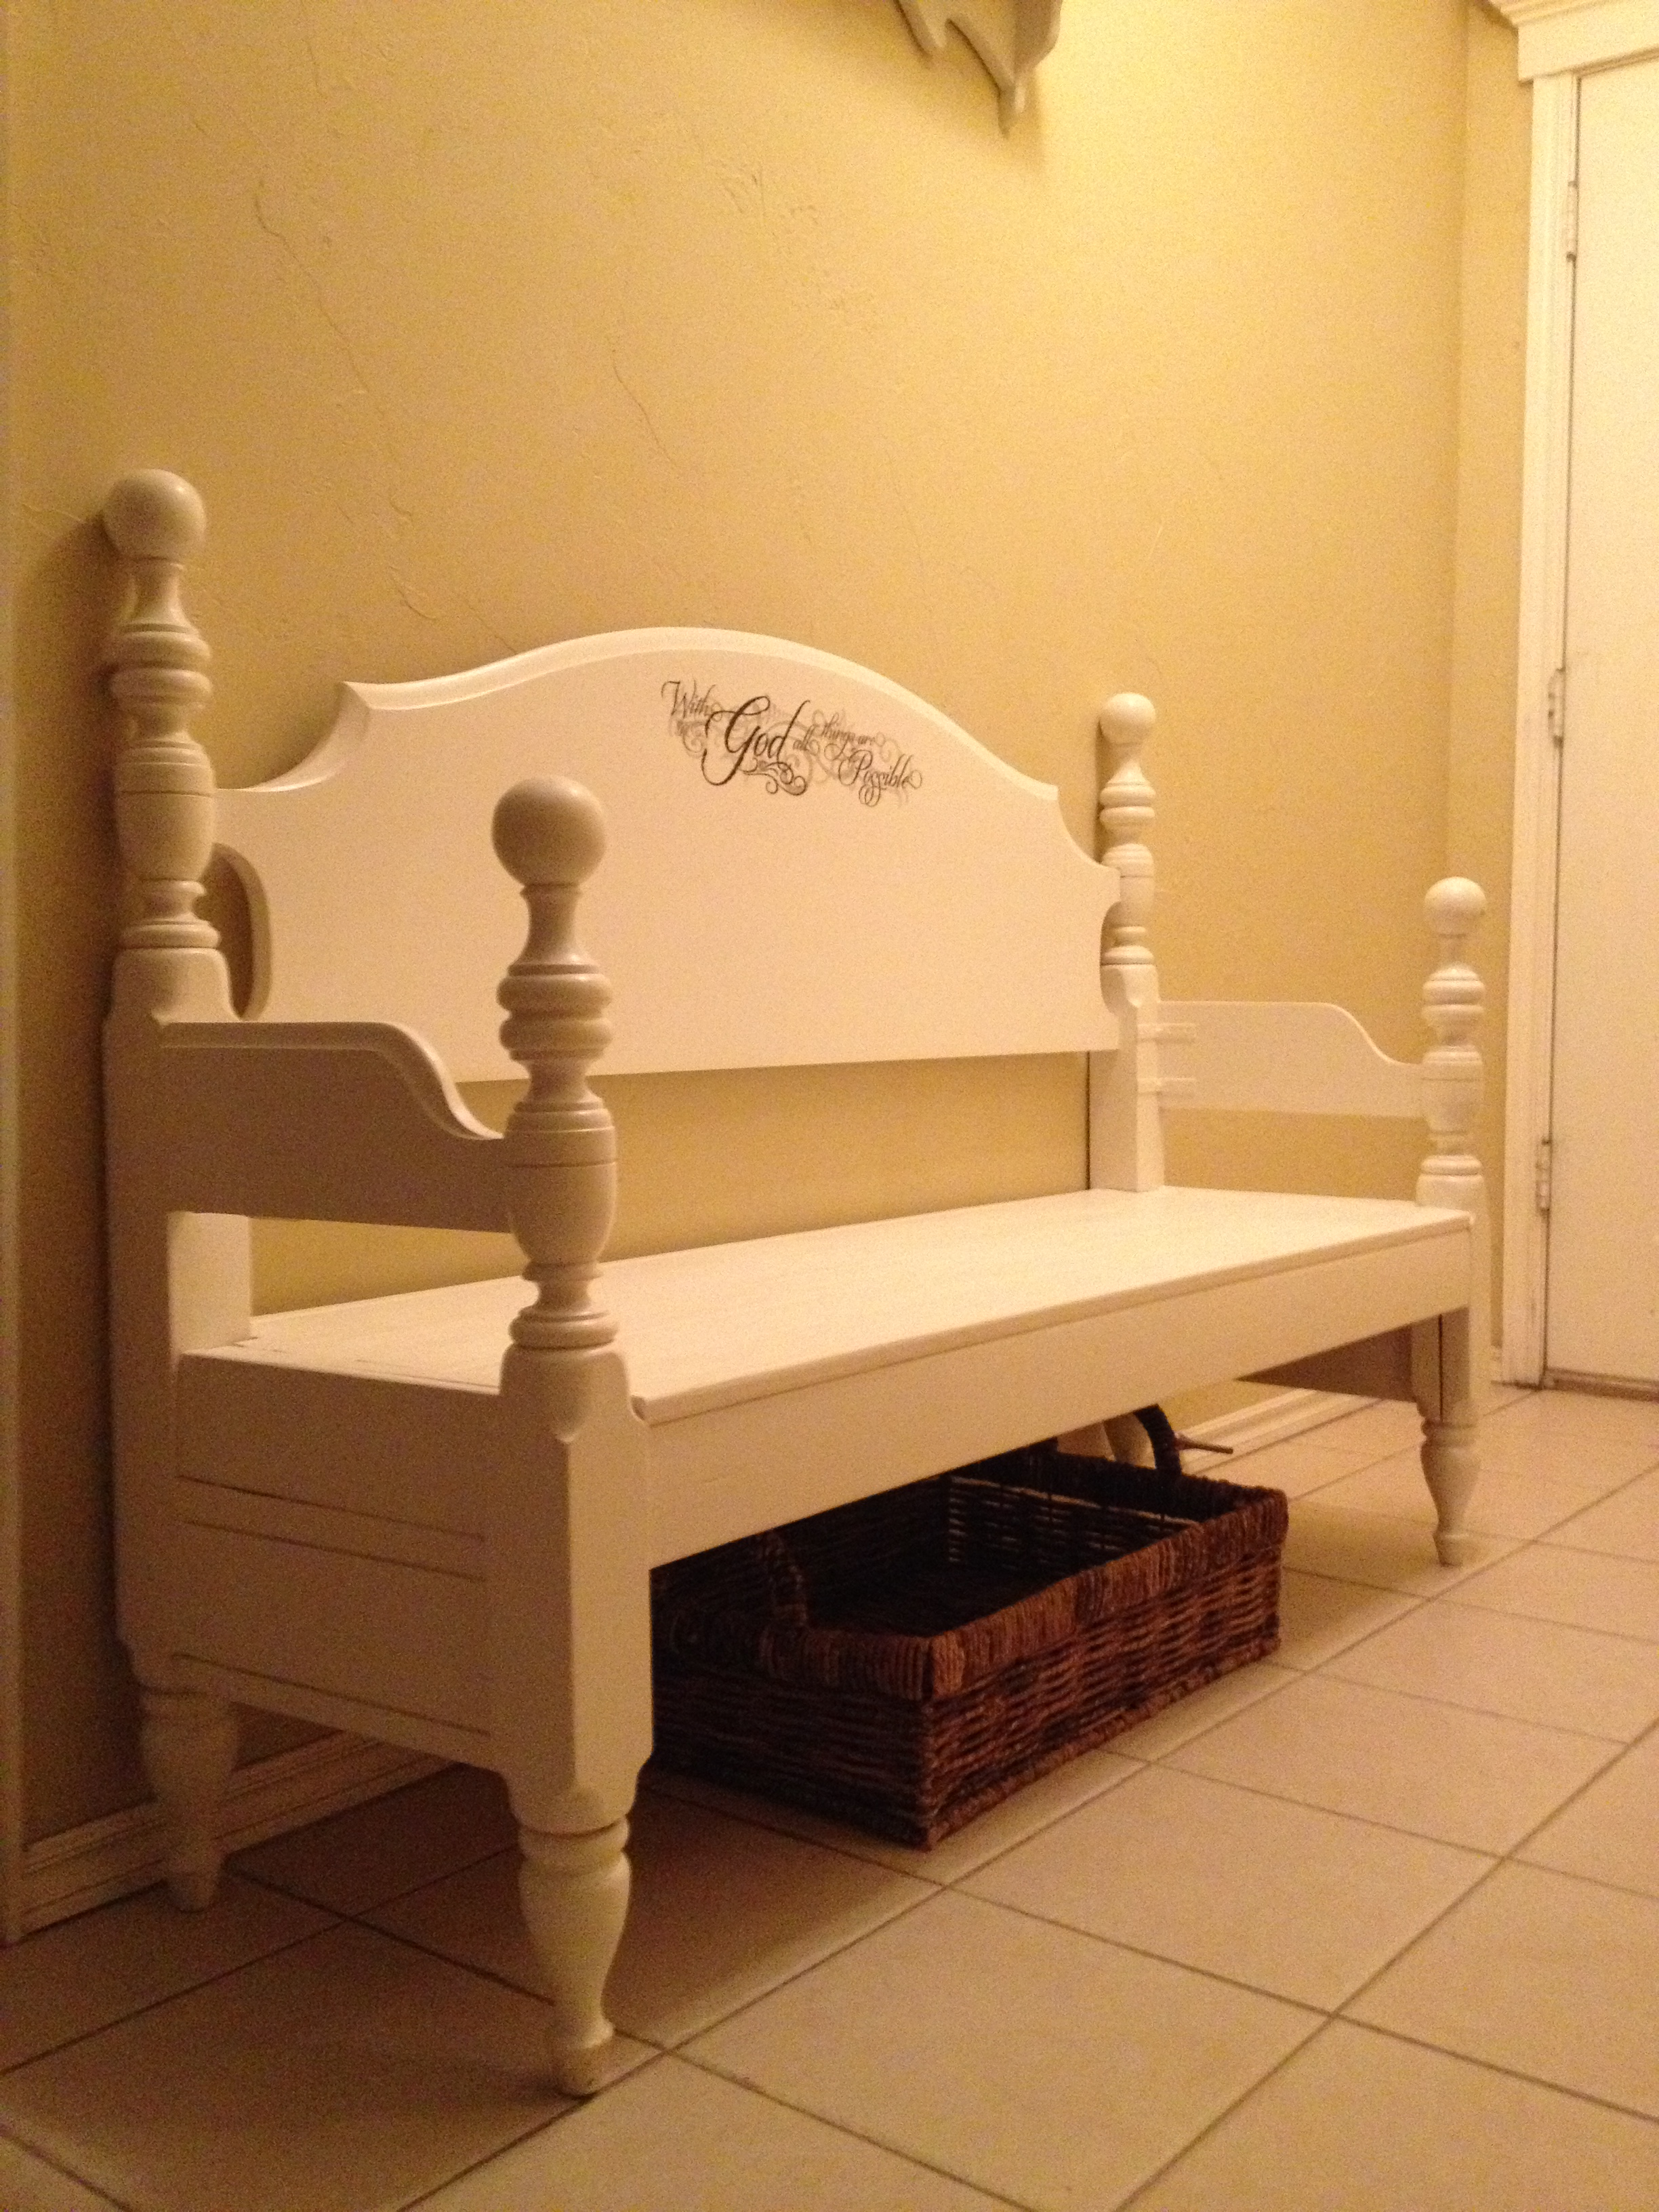 Bench By Bed: From Bed To Bench!